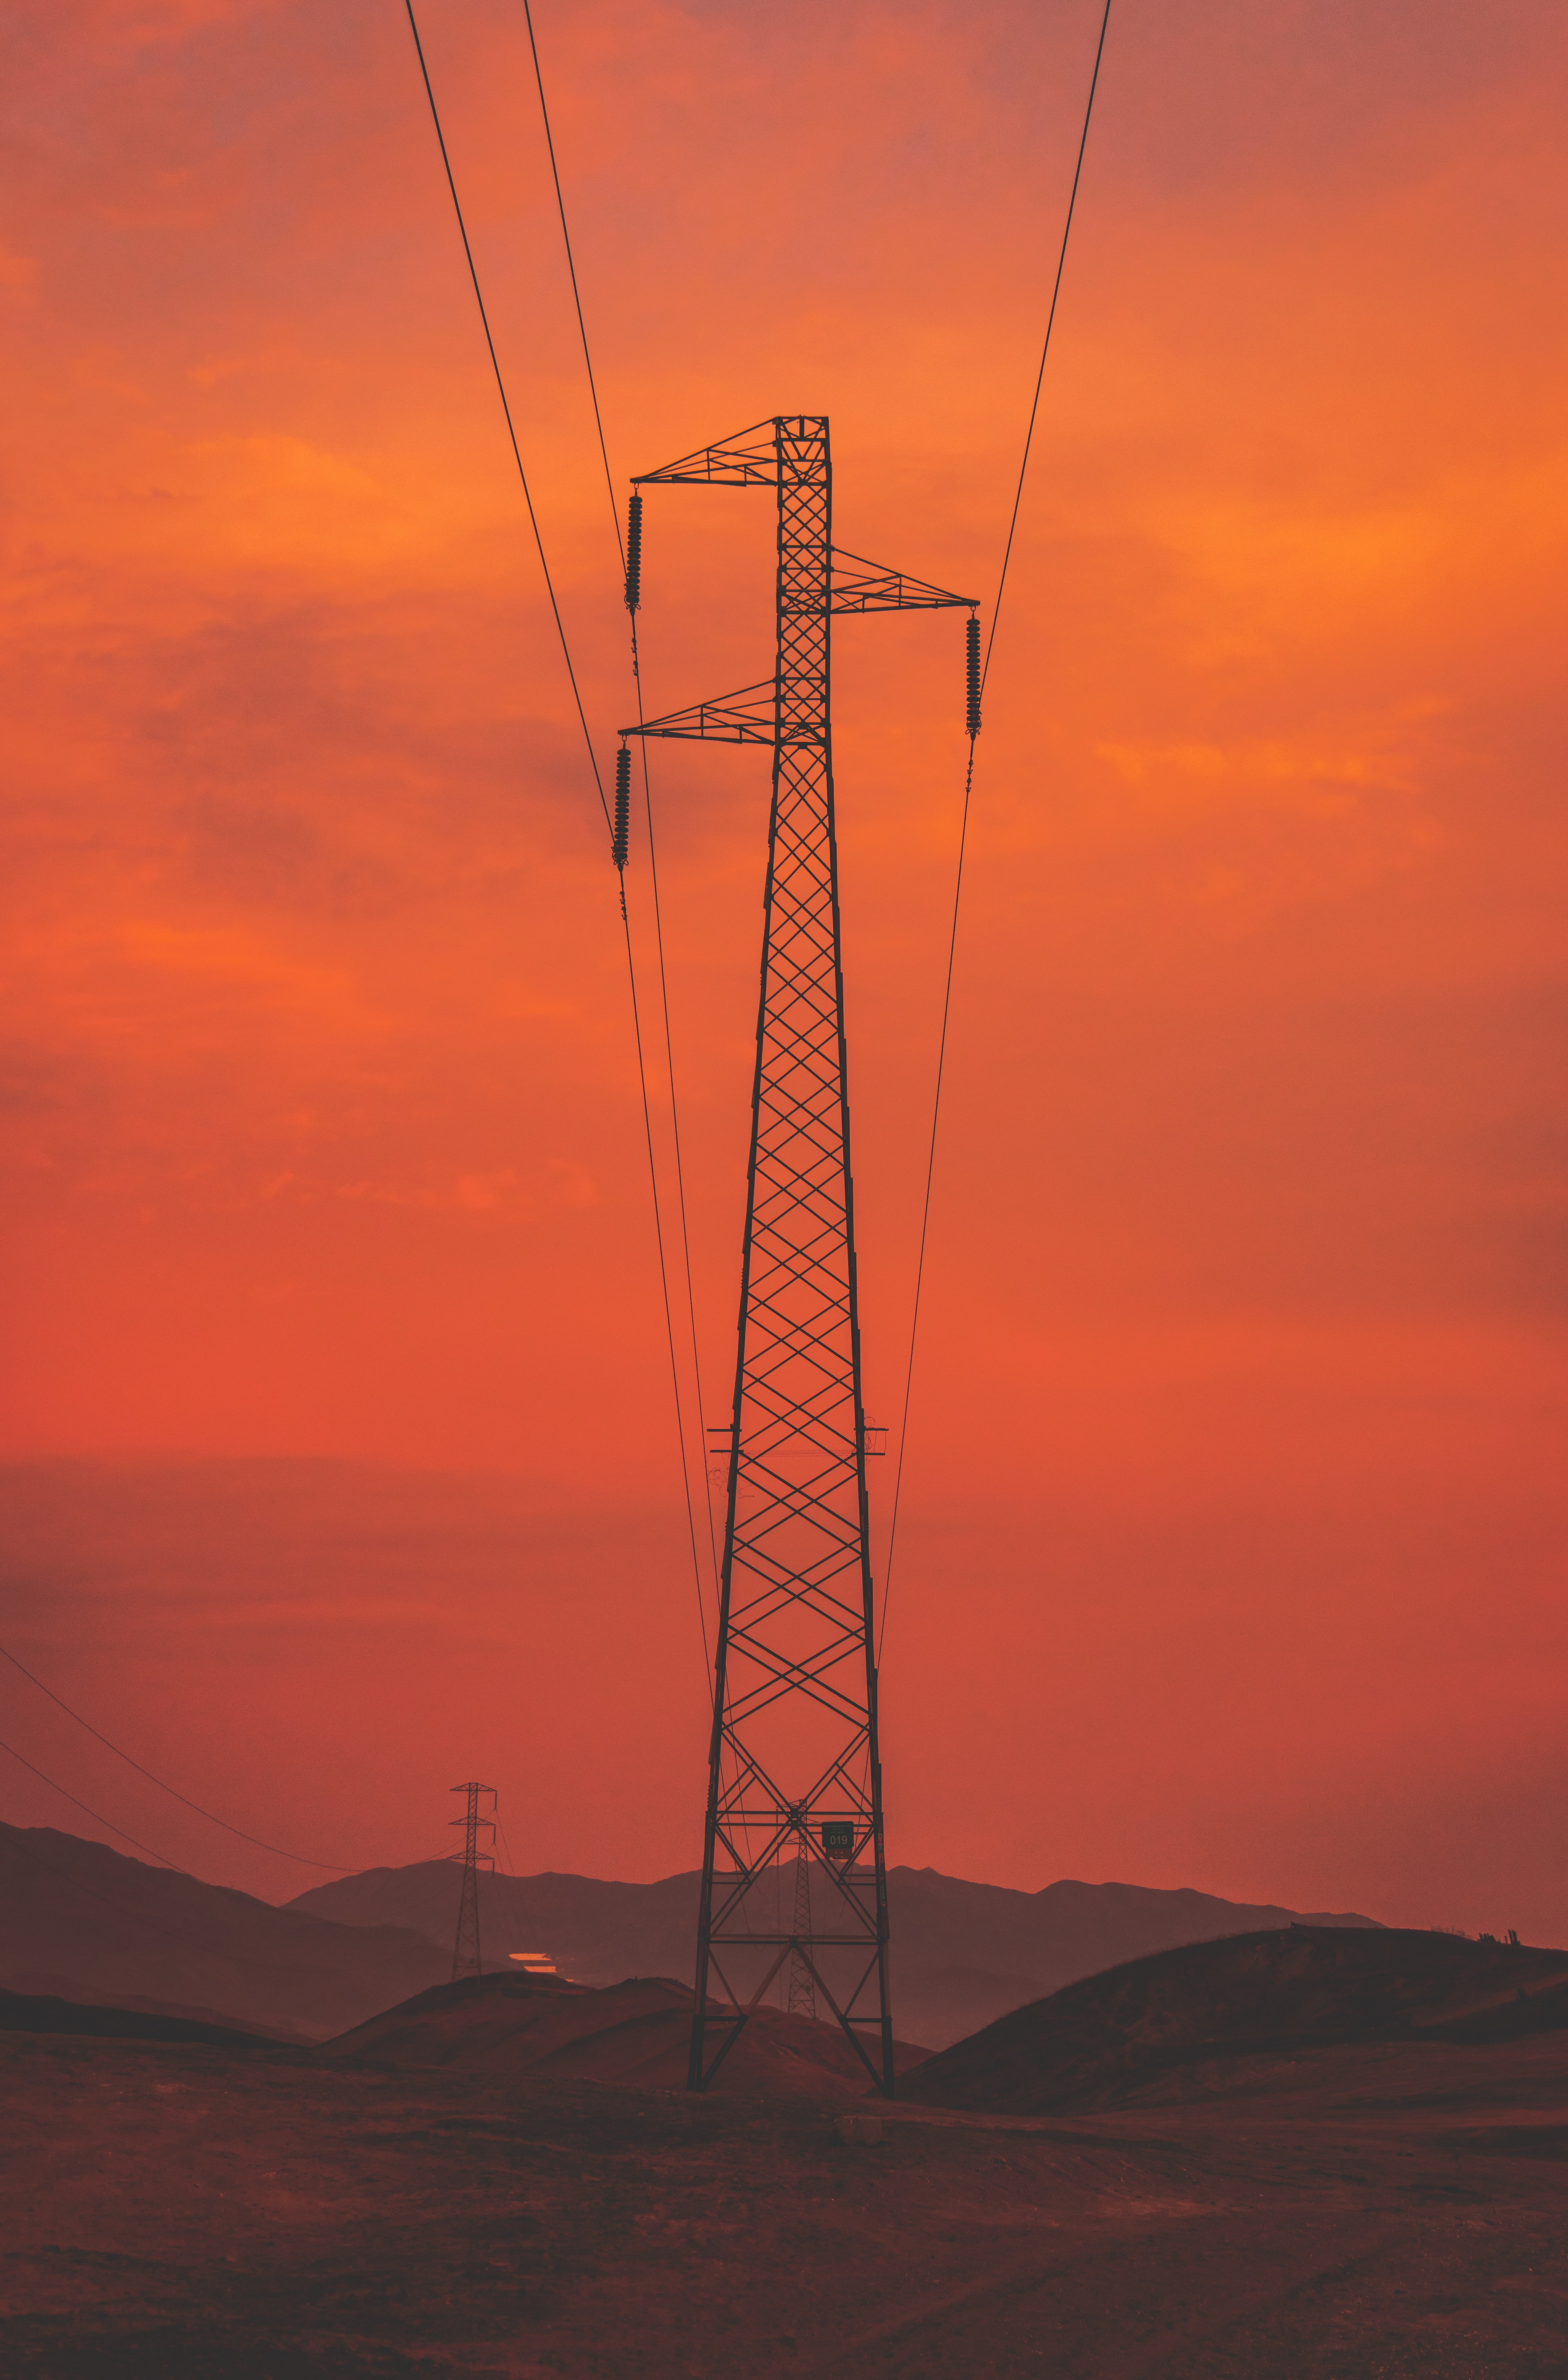 silhouette photography of electrical post during golden hour